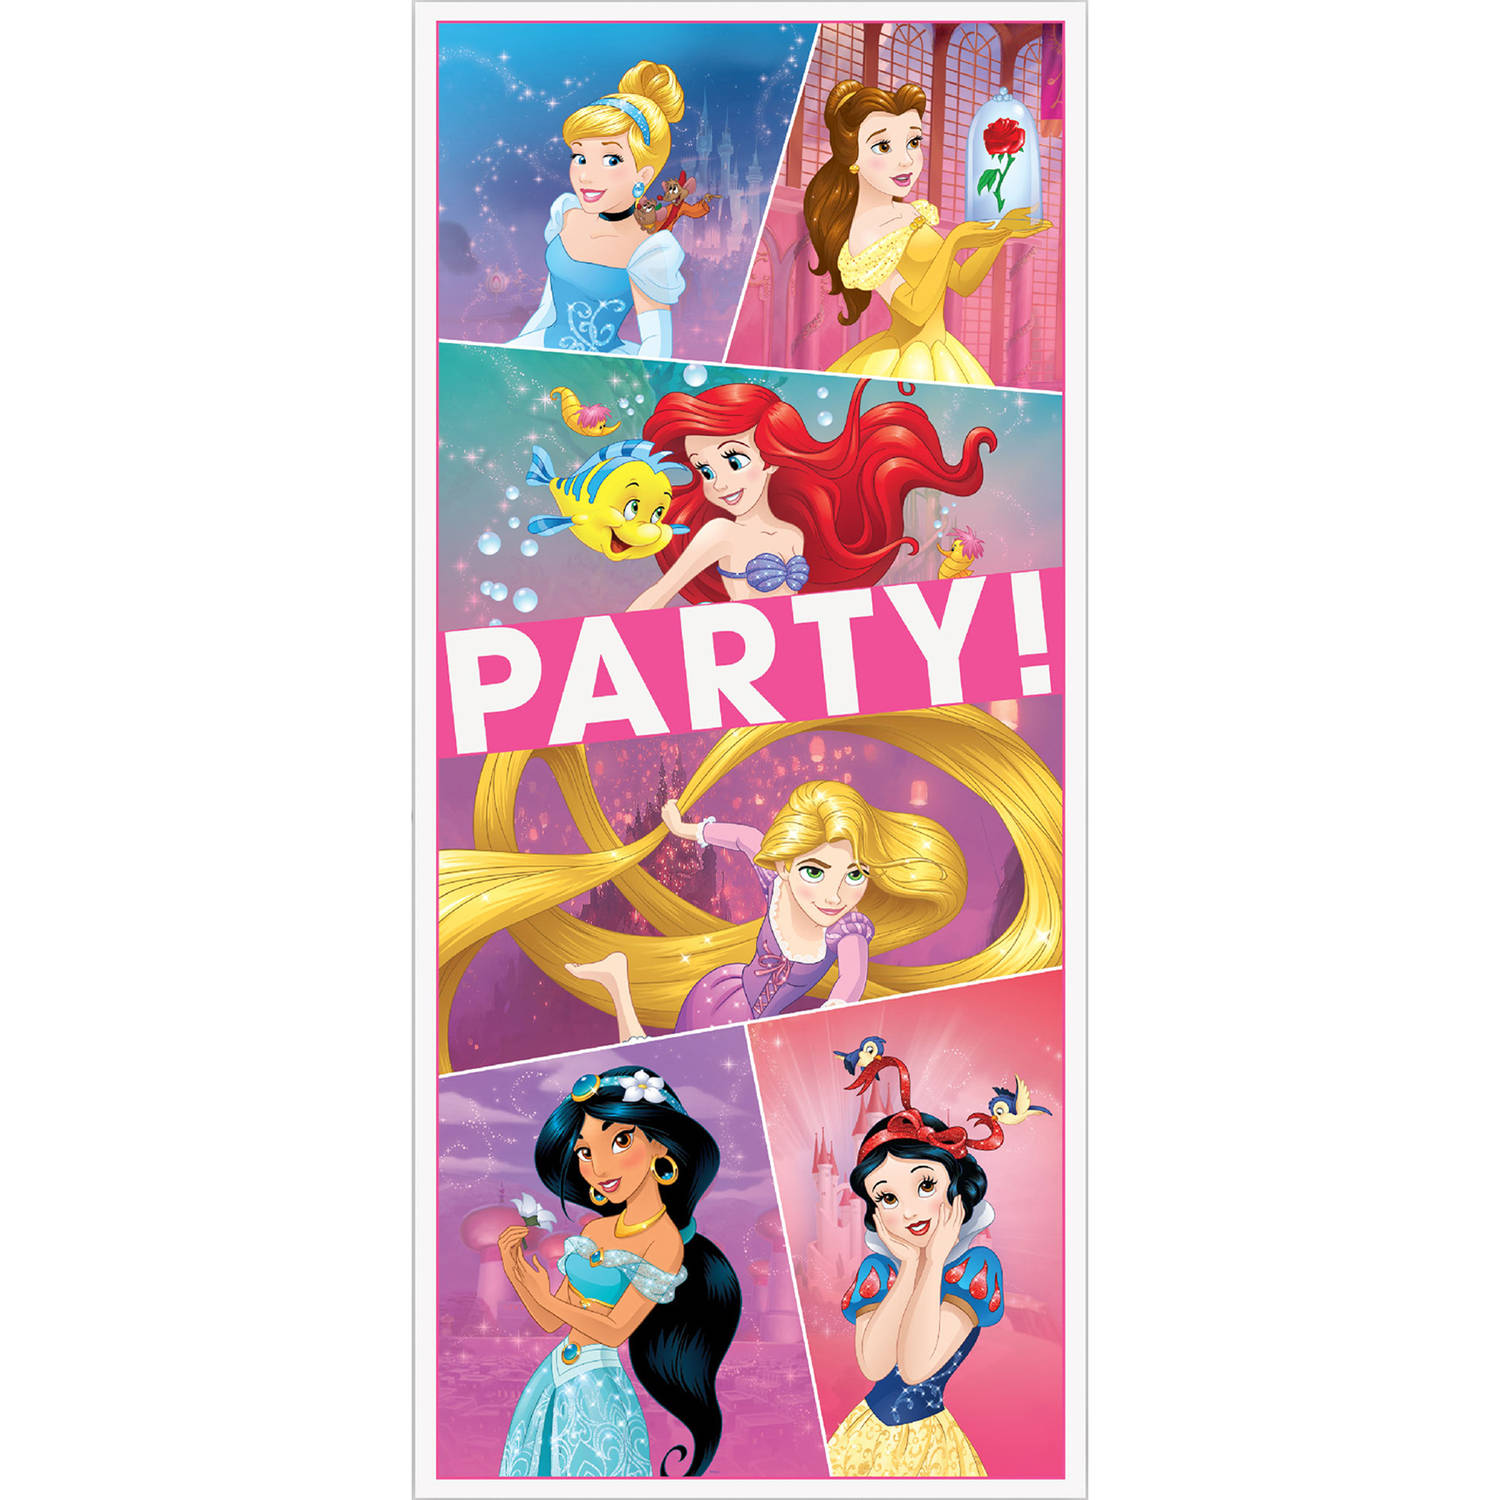 Plastic Disney Princess Door Poster Party Decoration, 60 x 27 in, 1ct